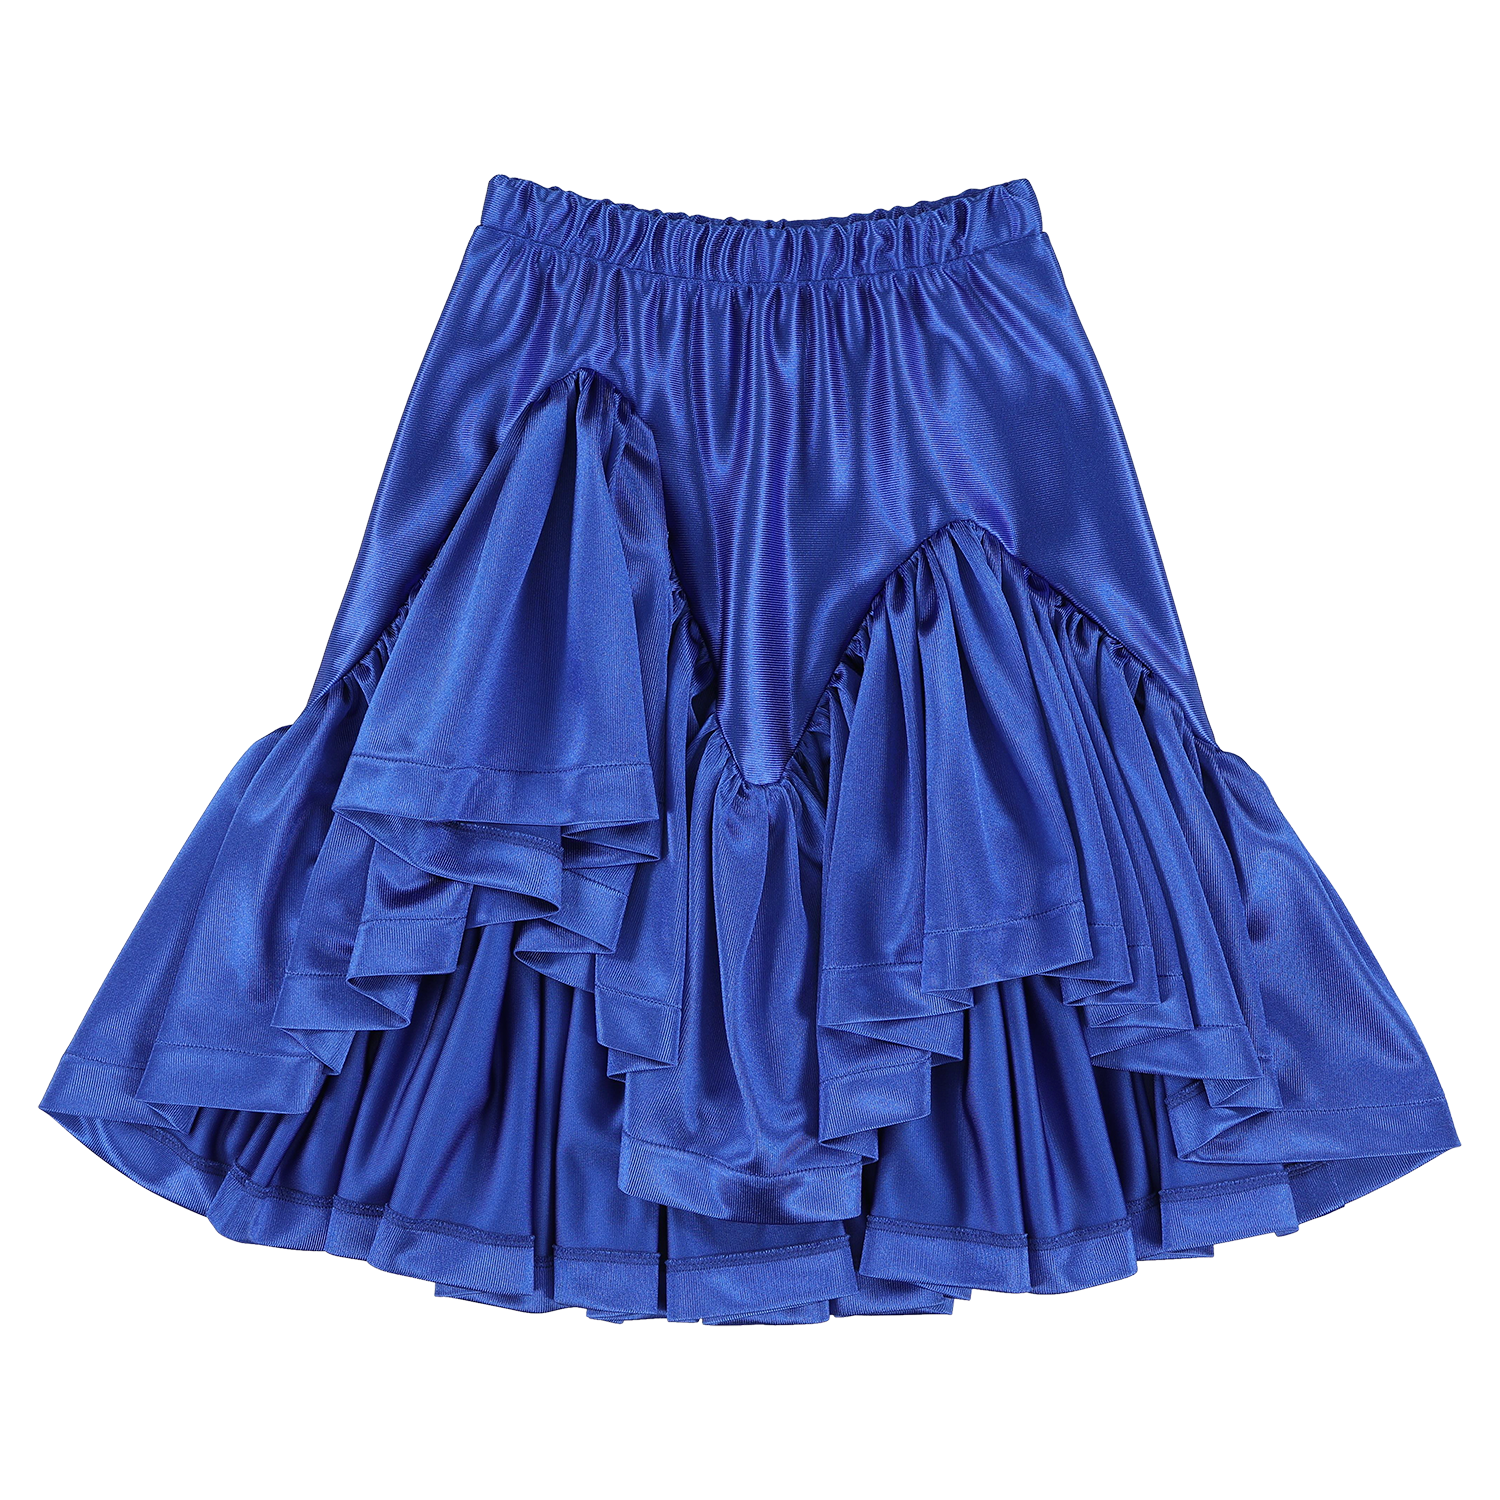 Glimmer Galaxy Blue Shiny Ruffled Skirt